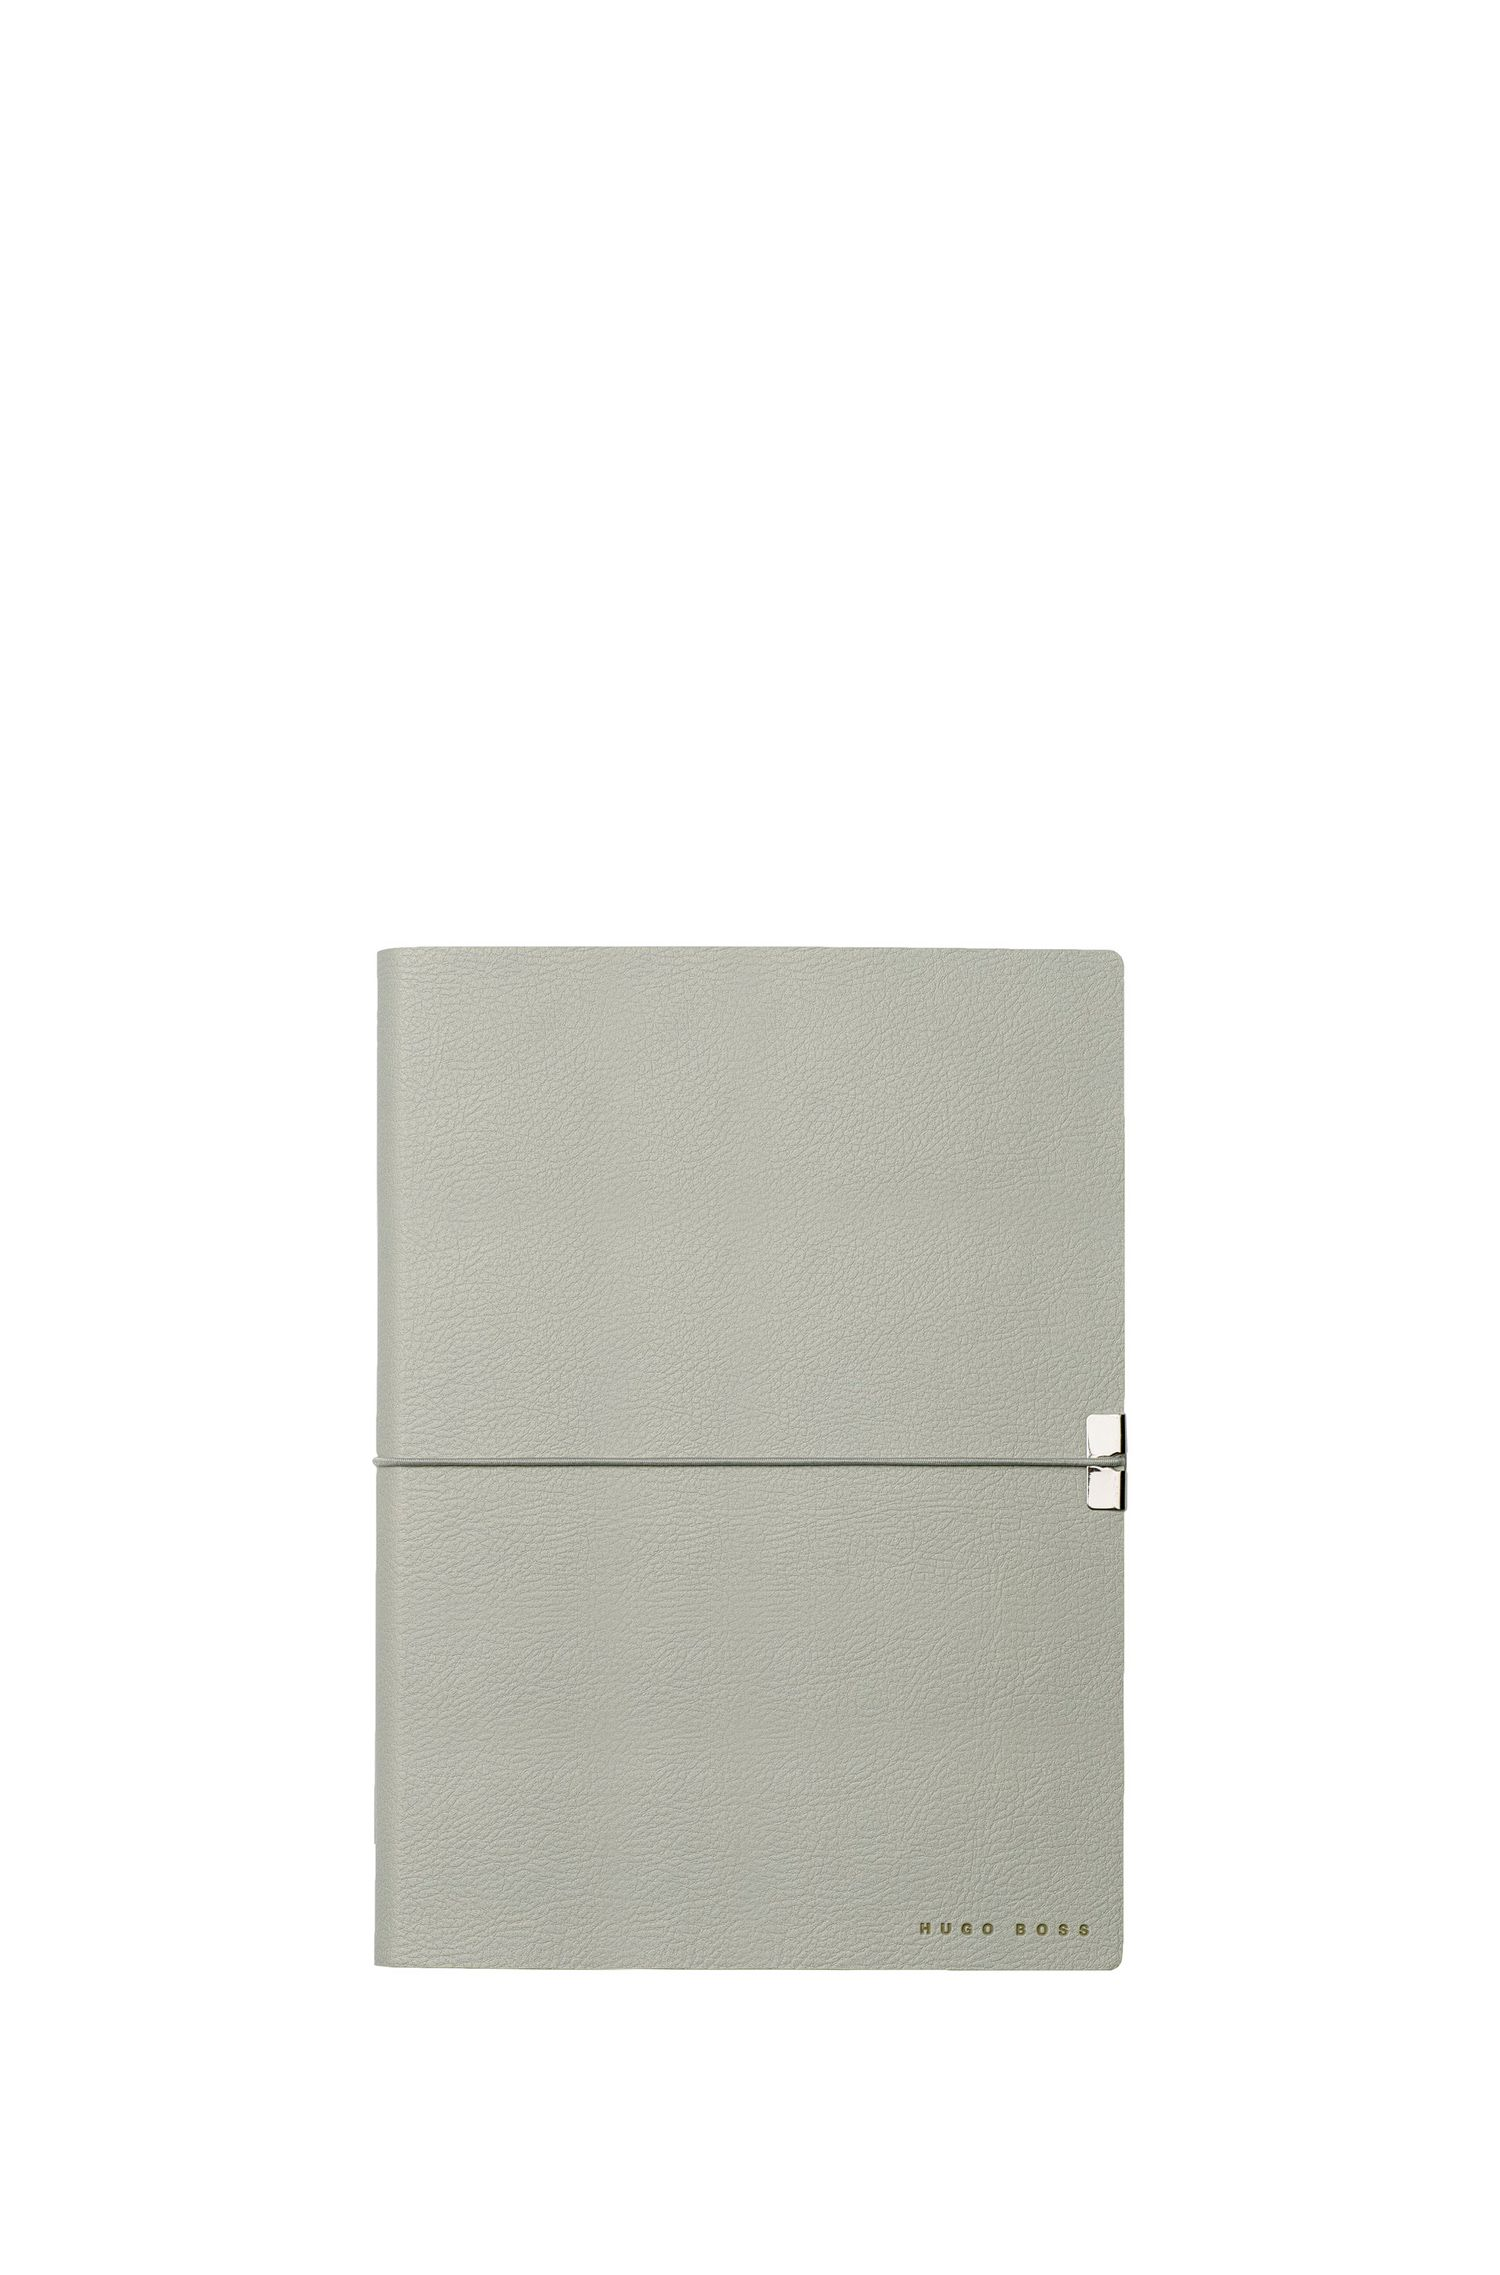 A5 notepad in grey faux leather